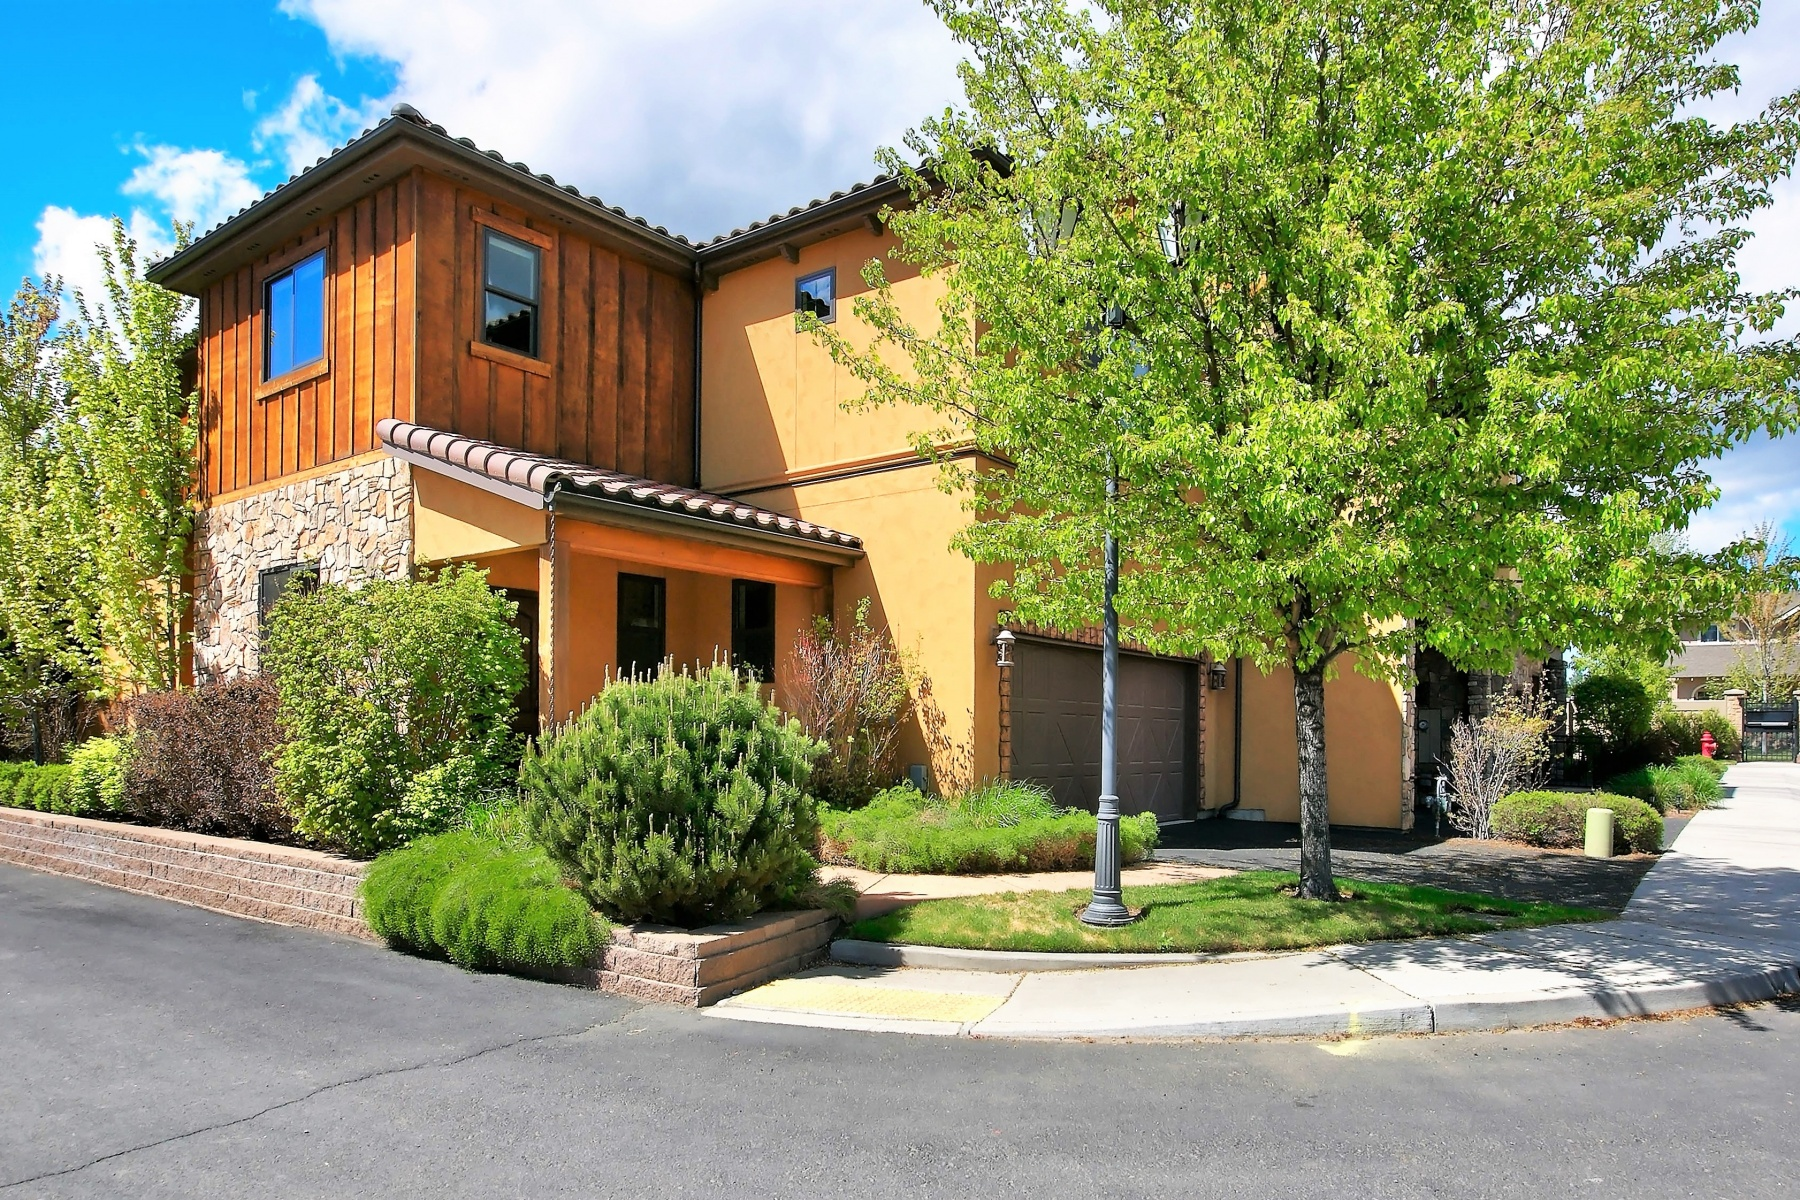 Townhouse for Sale at 63187 Via Palazzo, BEND Bend, Oregon, 97703 United States